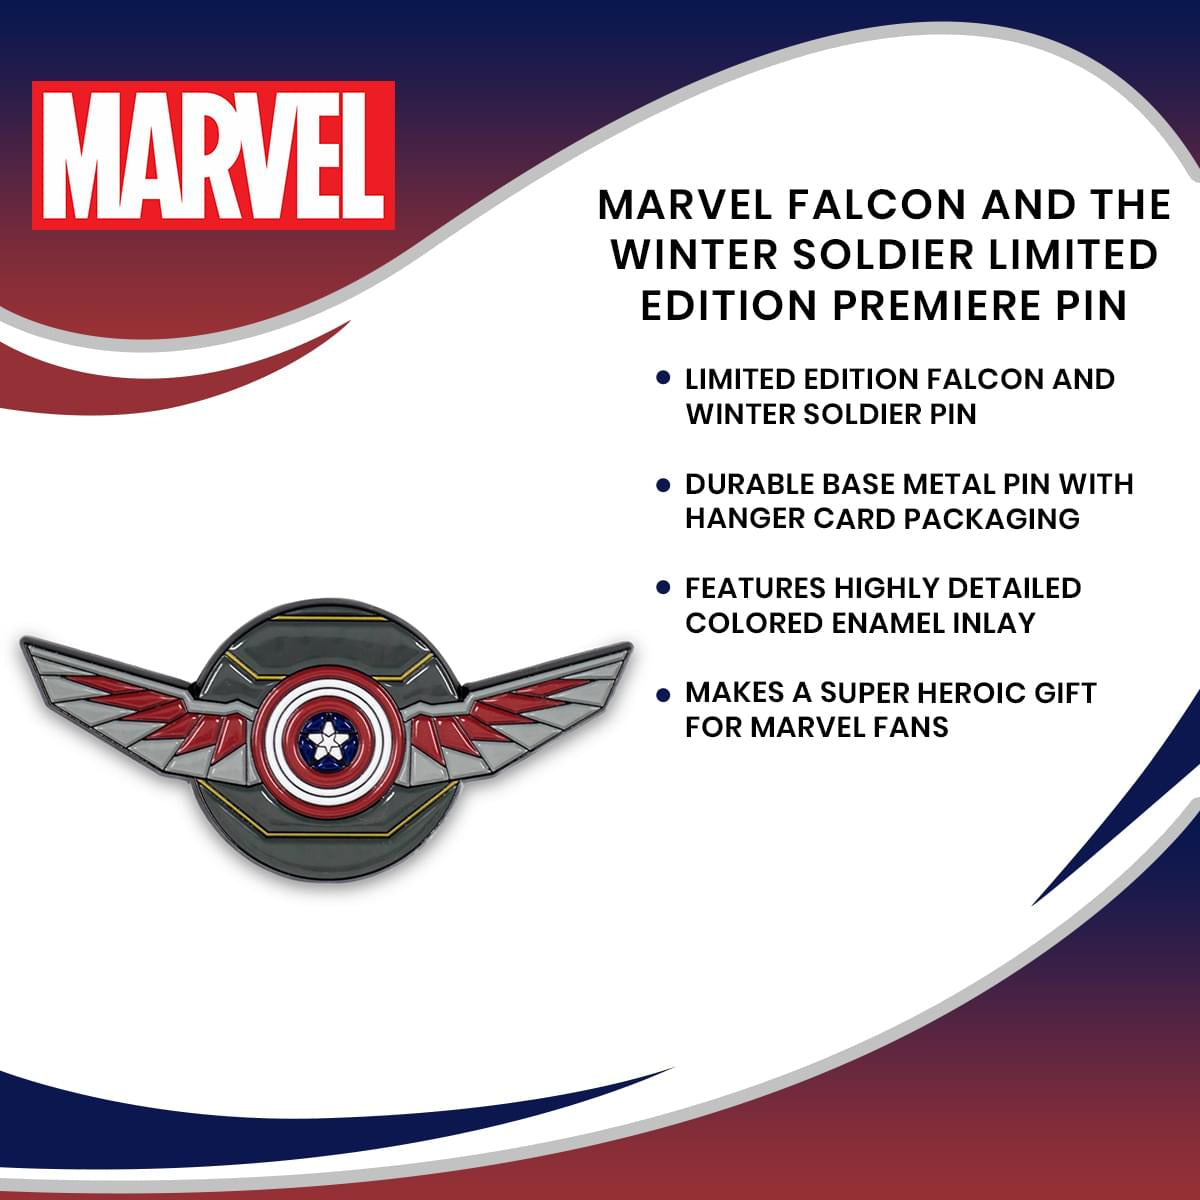 Marvel Falcon And The Winter Soldier Limited Edition Premiere Pin